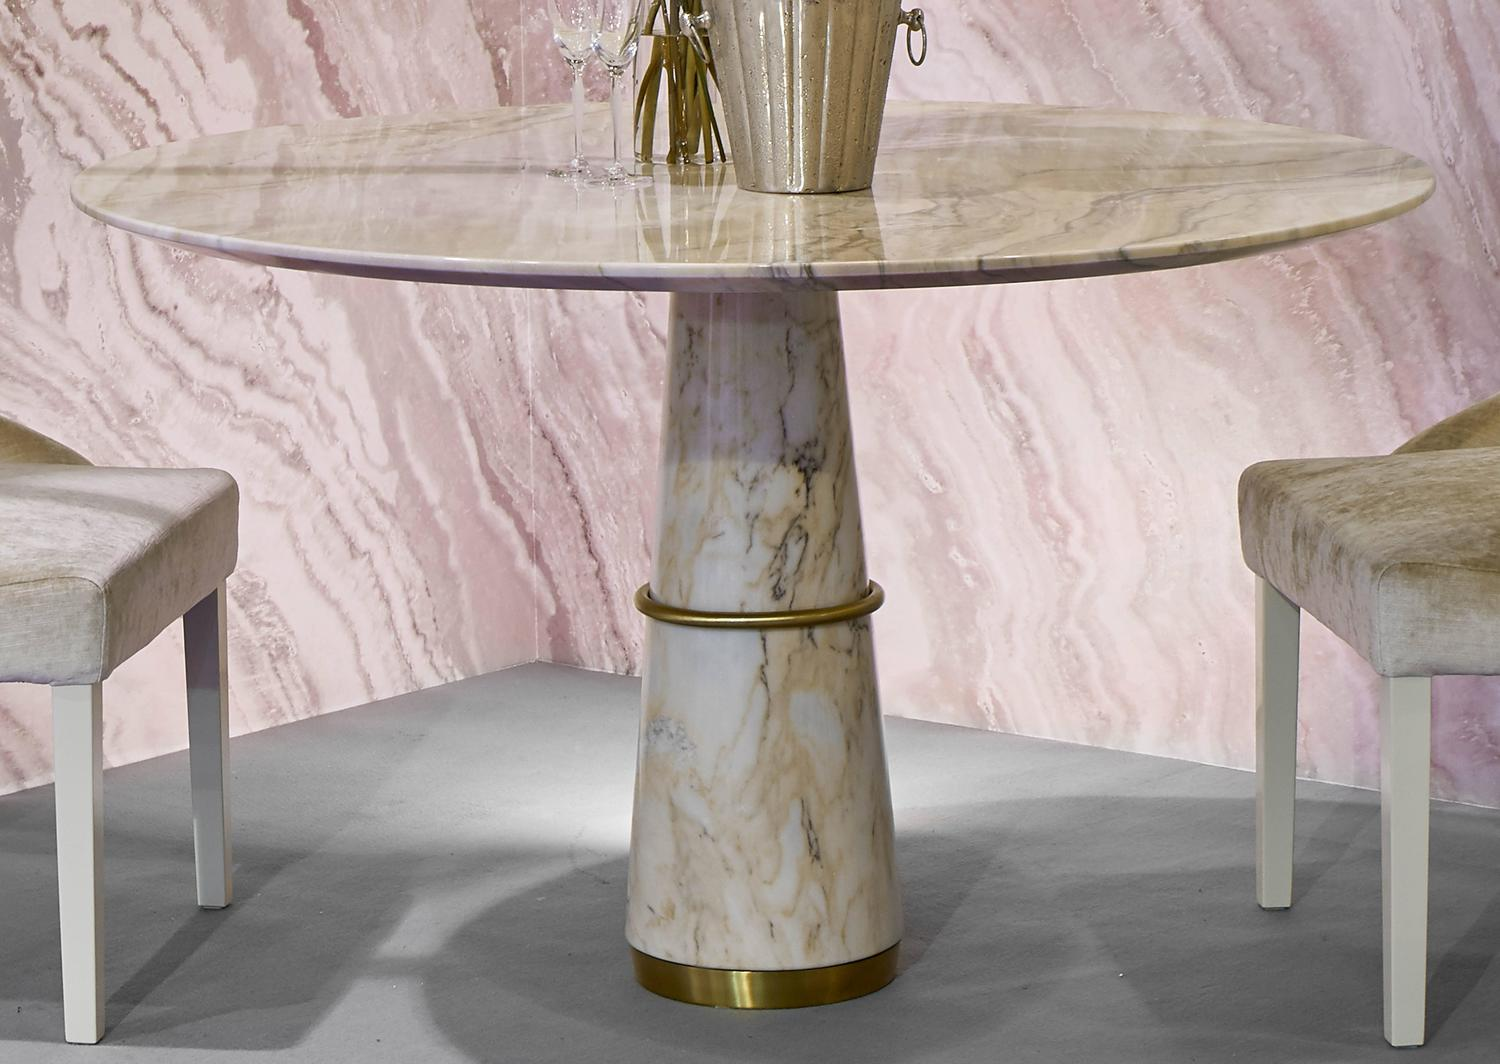 Marble Dining Tables Melbourne Images Restaurant Chairs